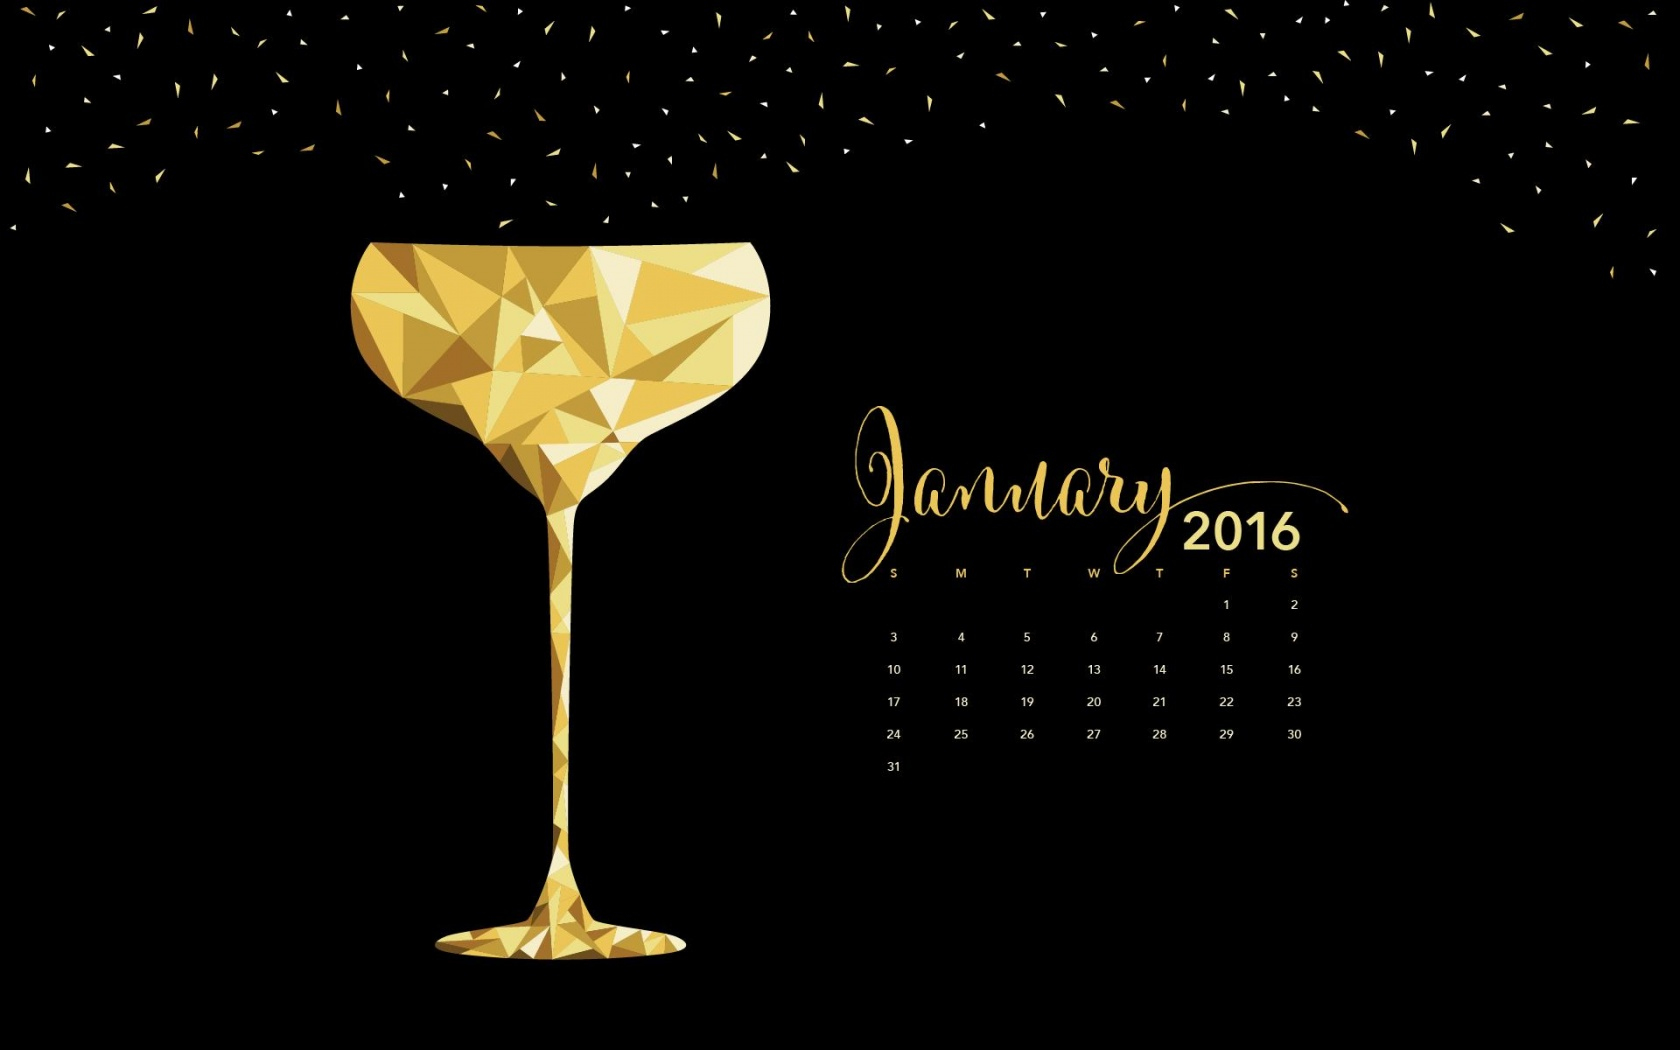 Champagne Glass January 2016